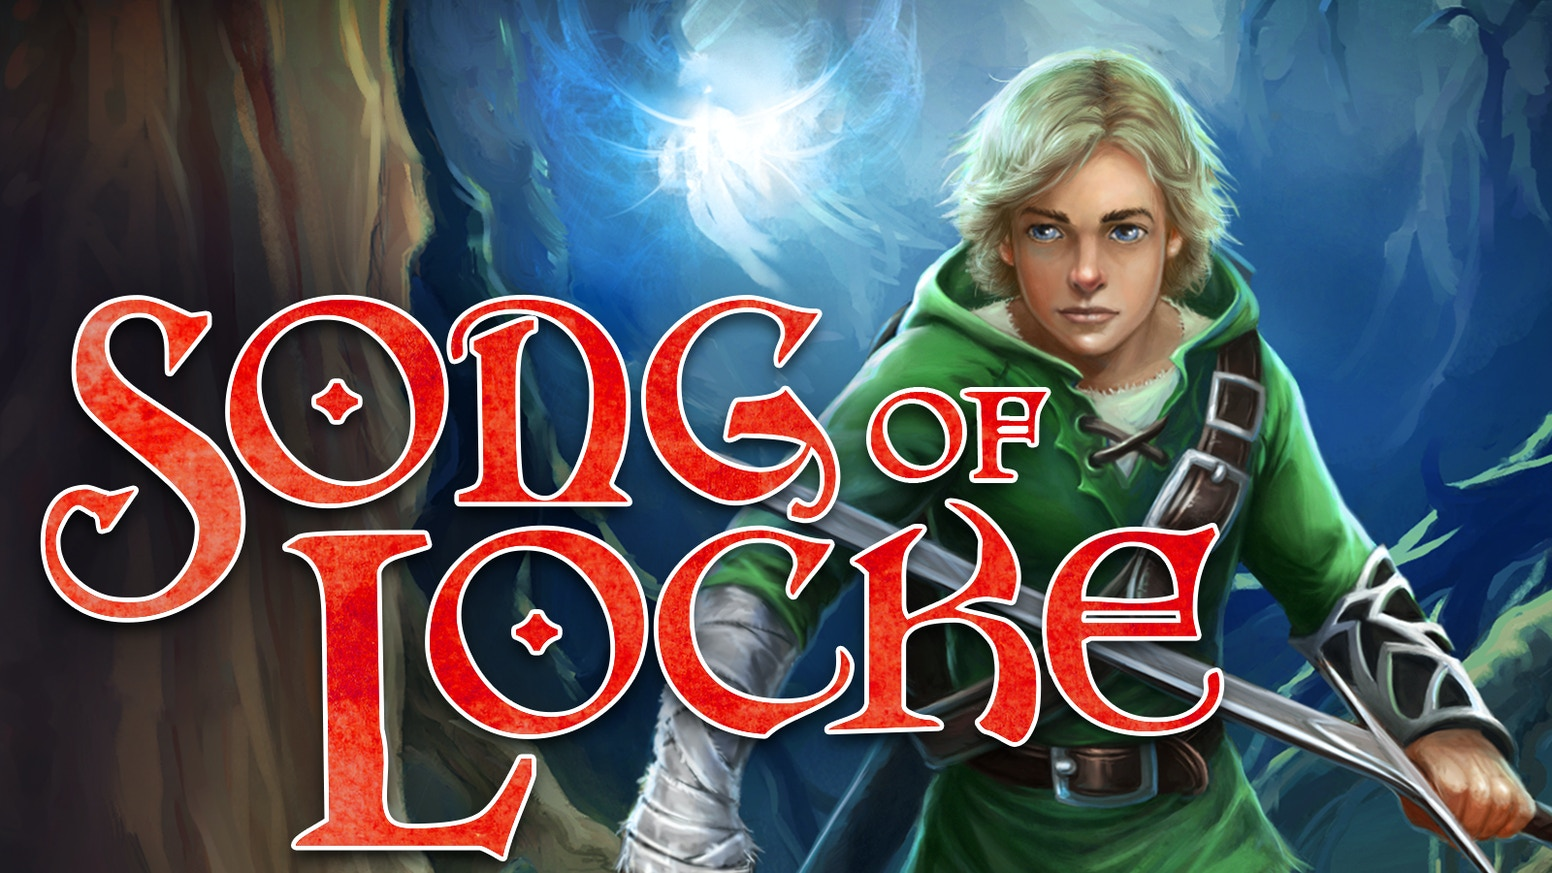 SONG OF LOCKE is a novel about a boy on a quest. It's inspired by Legend of Zelda, and it's written by a student of Brandon Sanderson.